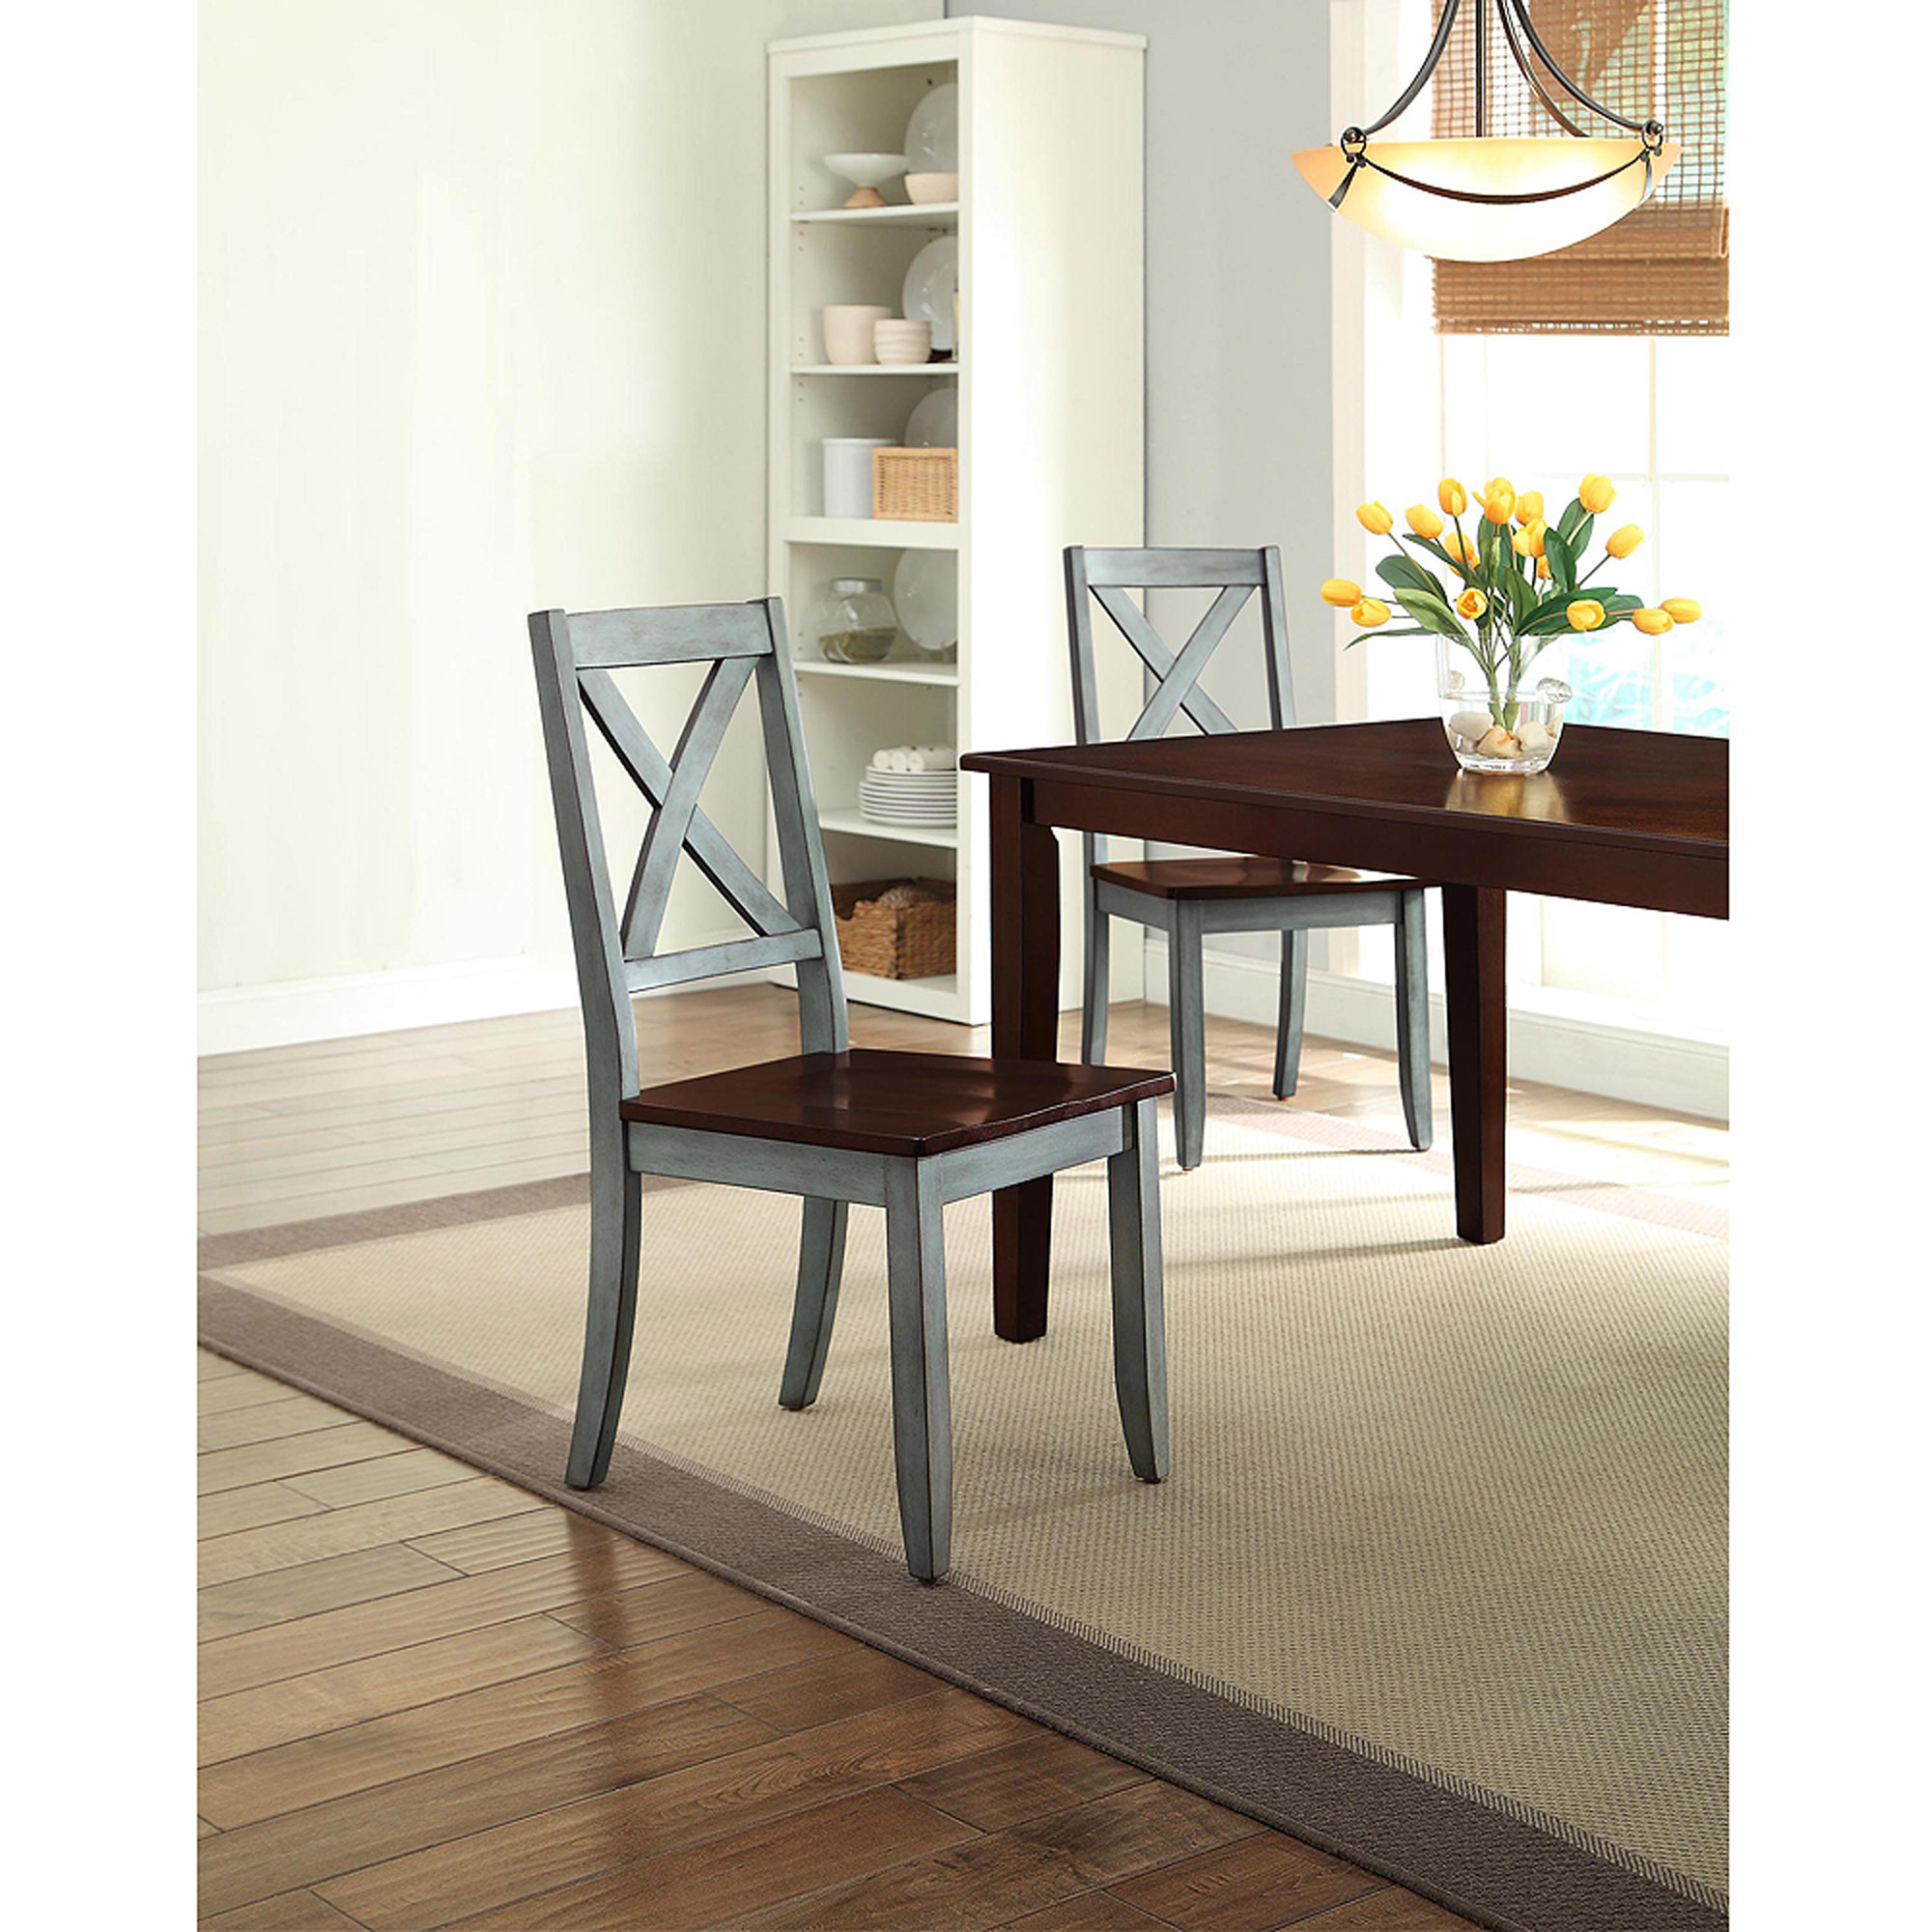 Etonnant Better Homes And Gardens Maddox Crossing Dining Chair, Set Of 2    Walmart.com